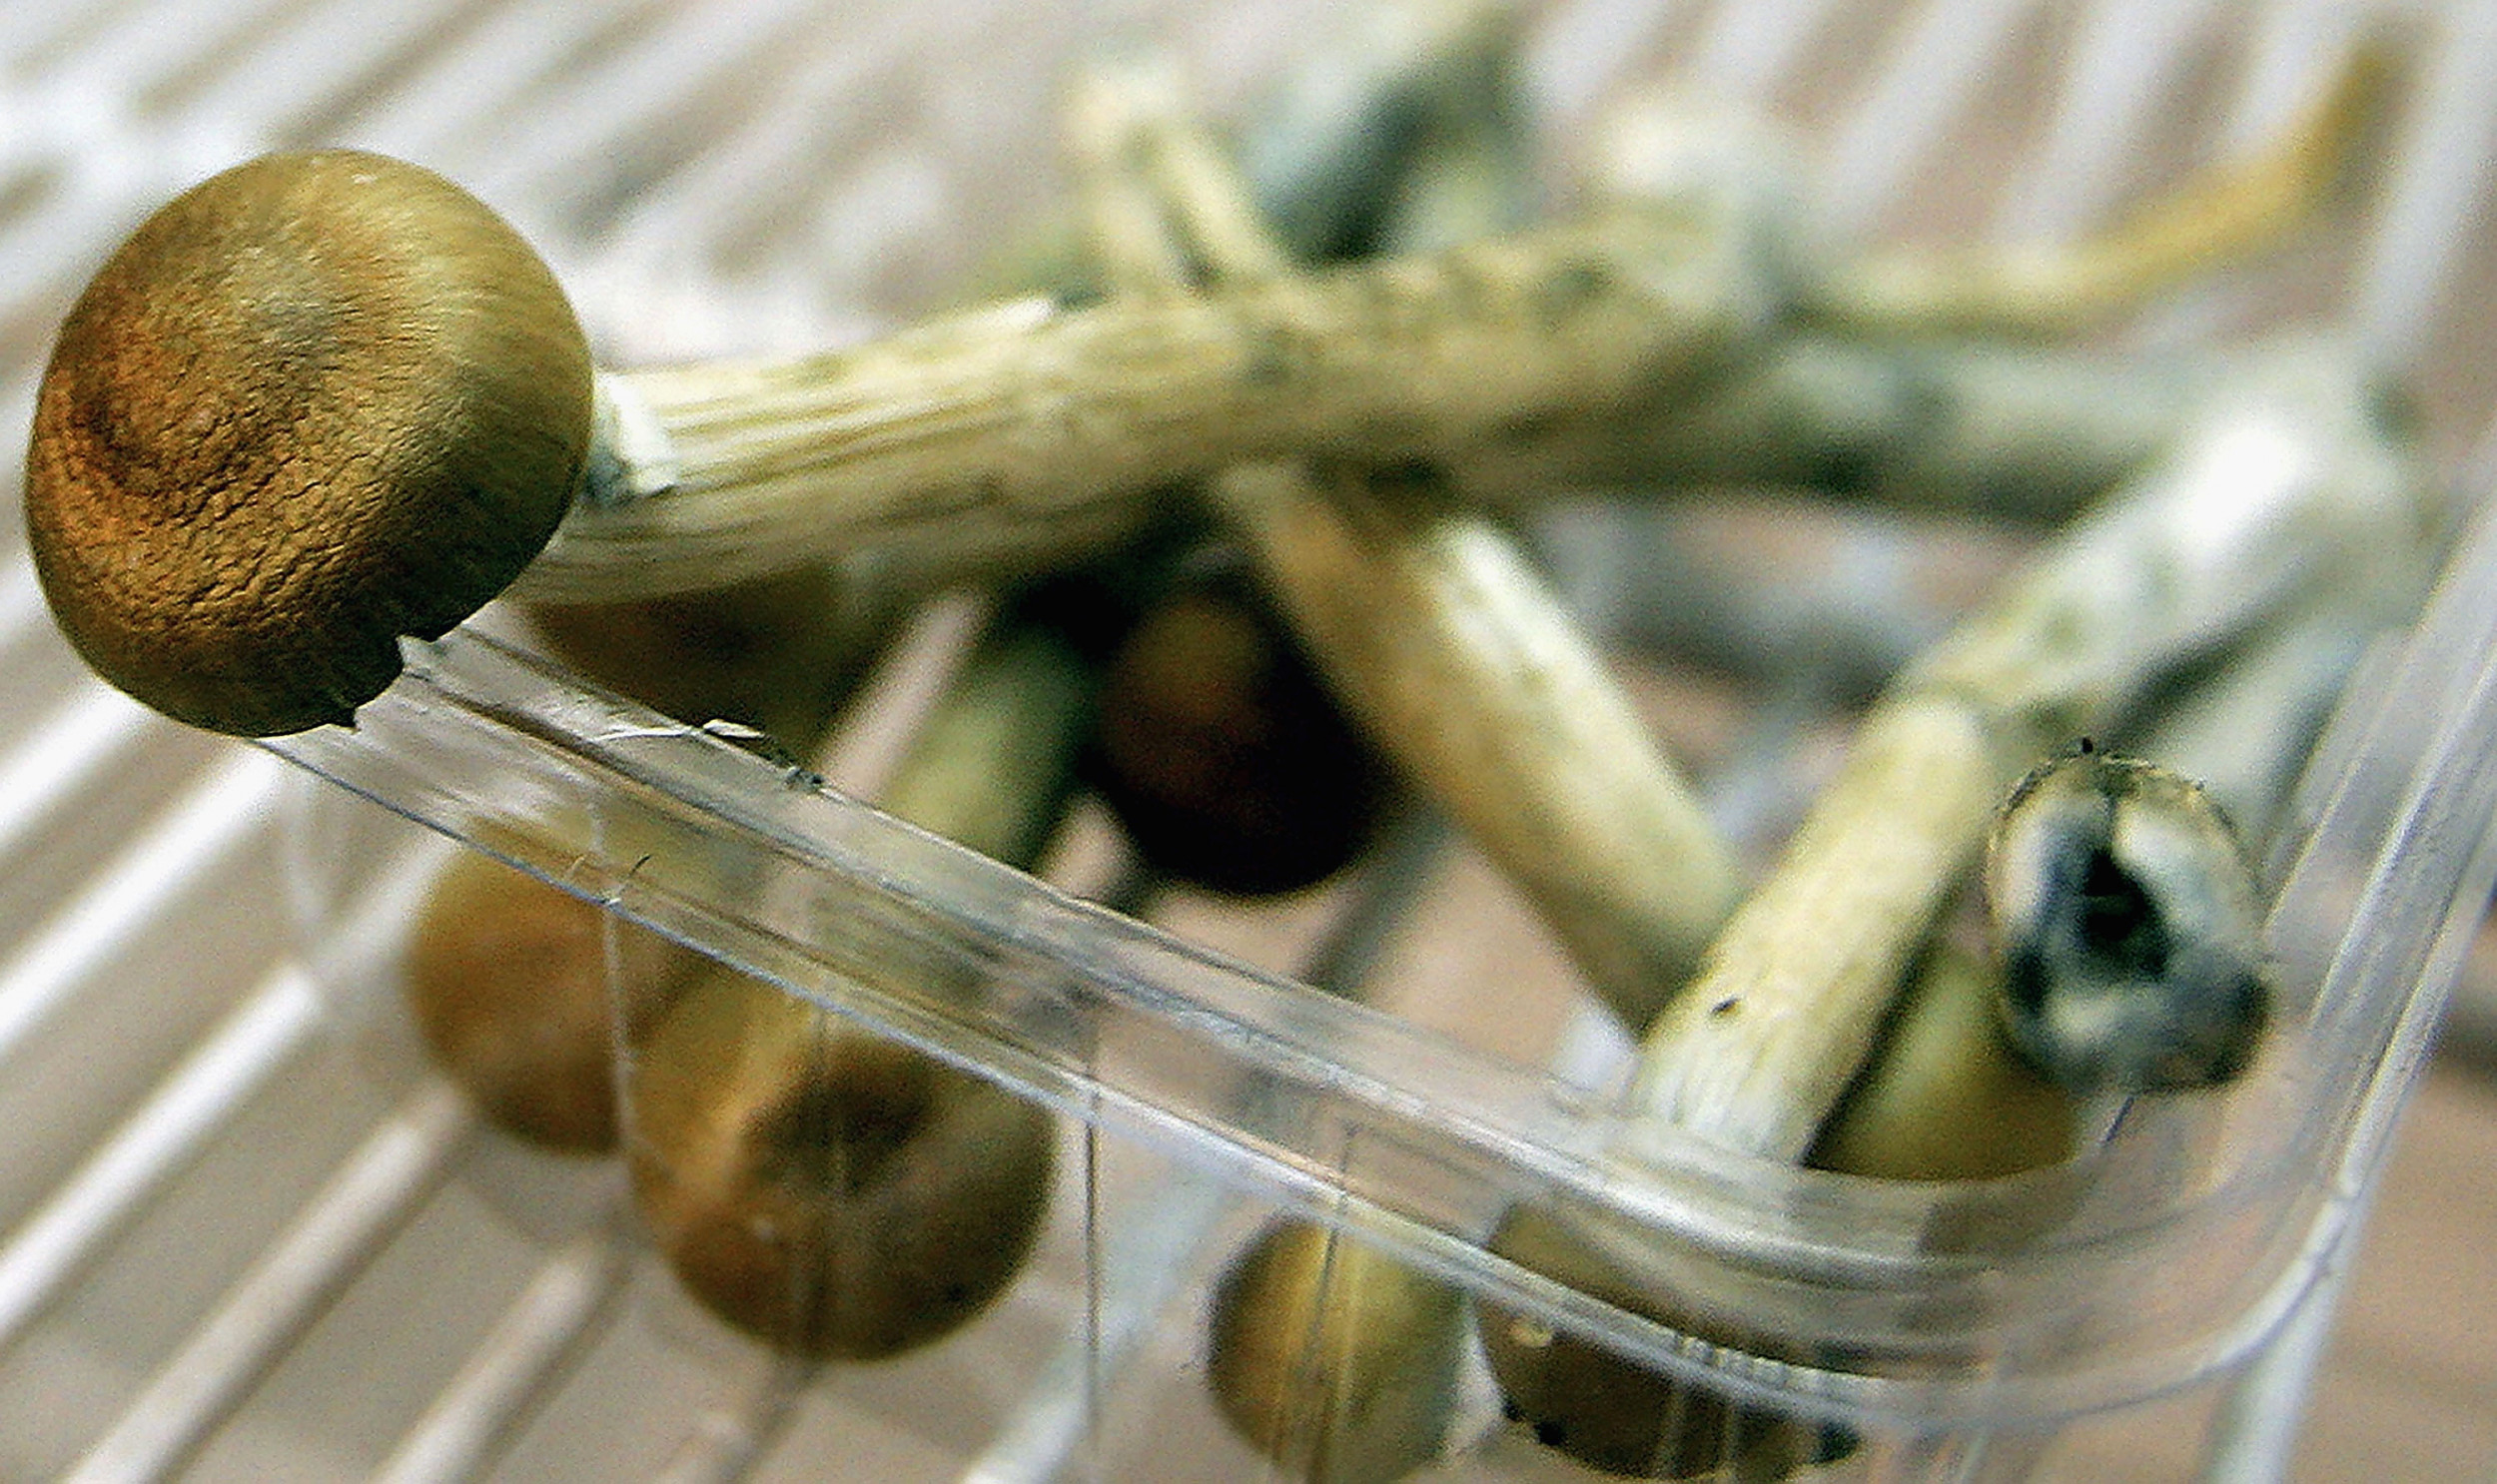 Magic Mushrooms Guide: Where Shrooms Are Legal and How To